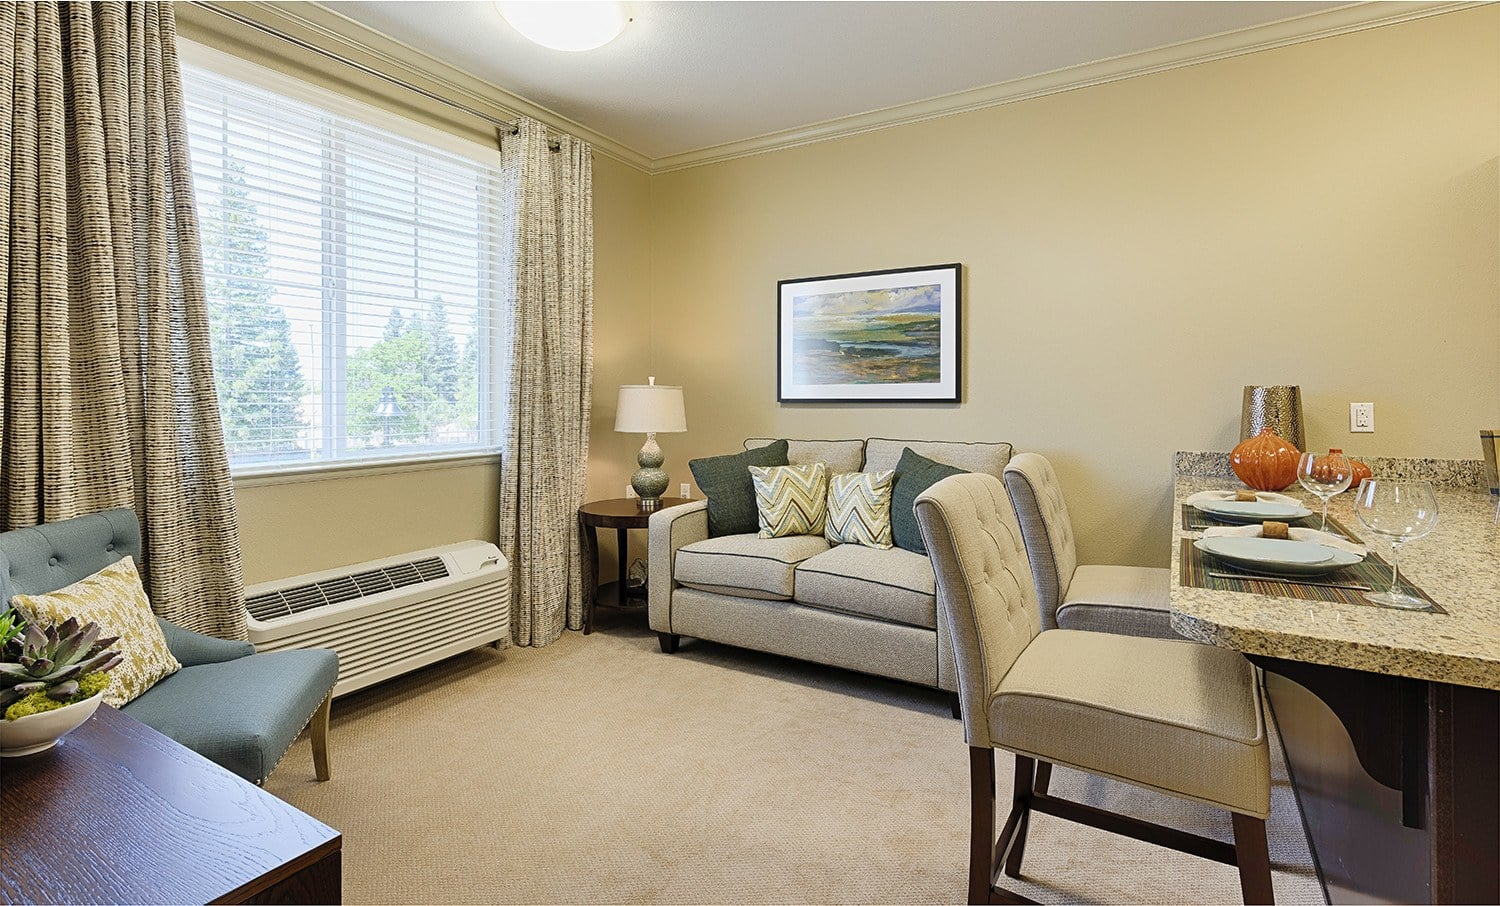 Living room with dining table at Kingston Bay Senior Living in Fresno, California.